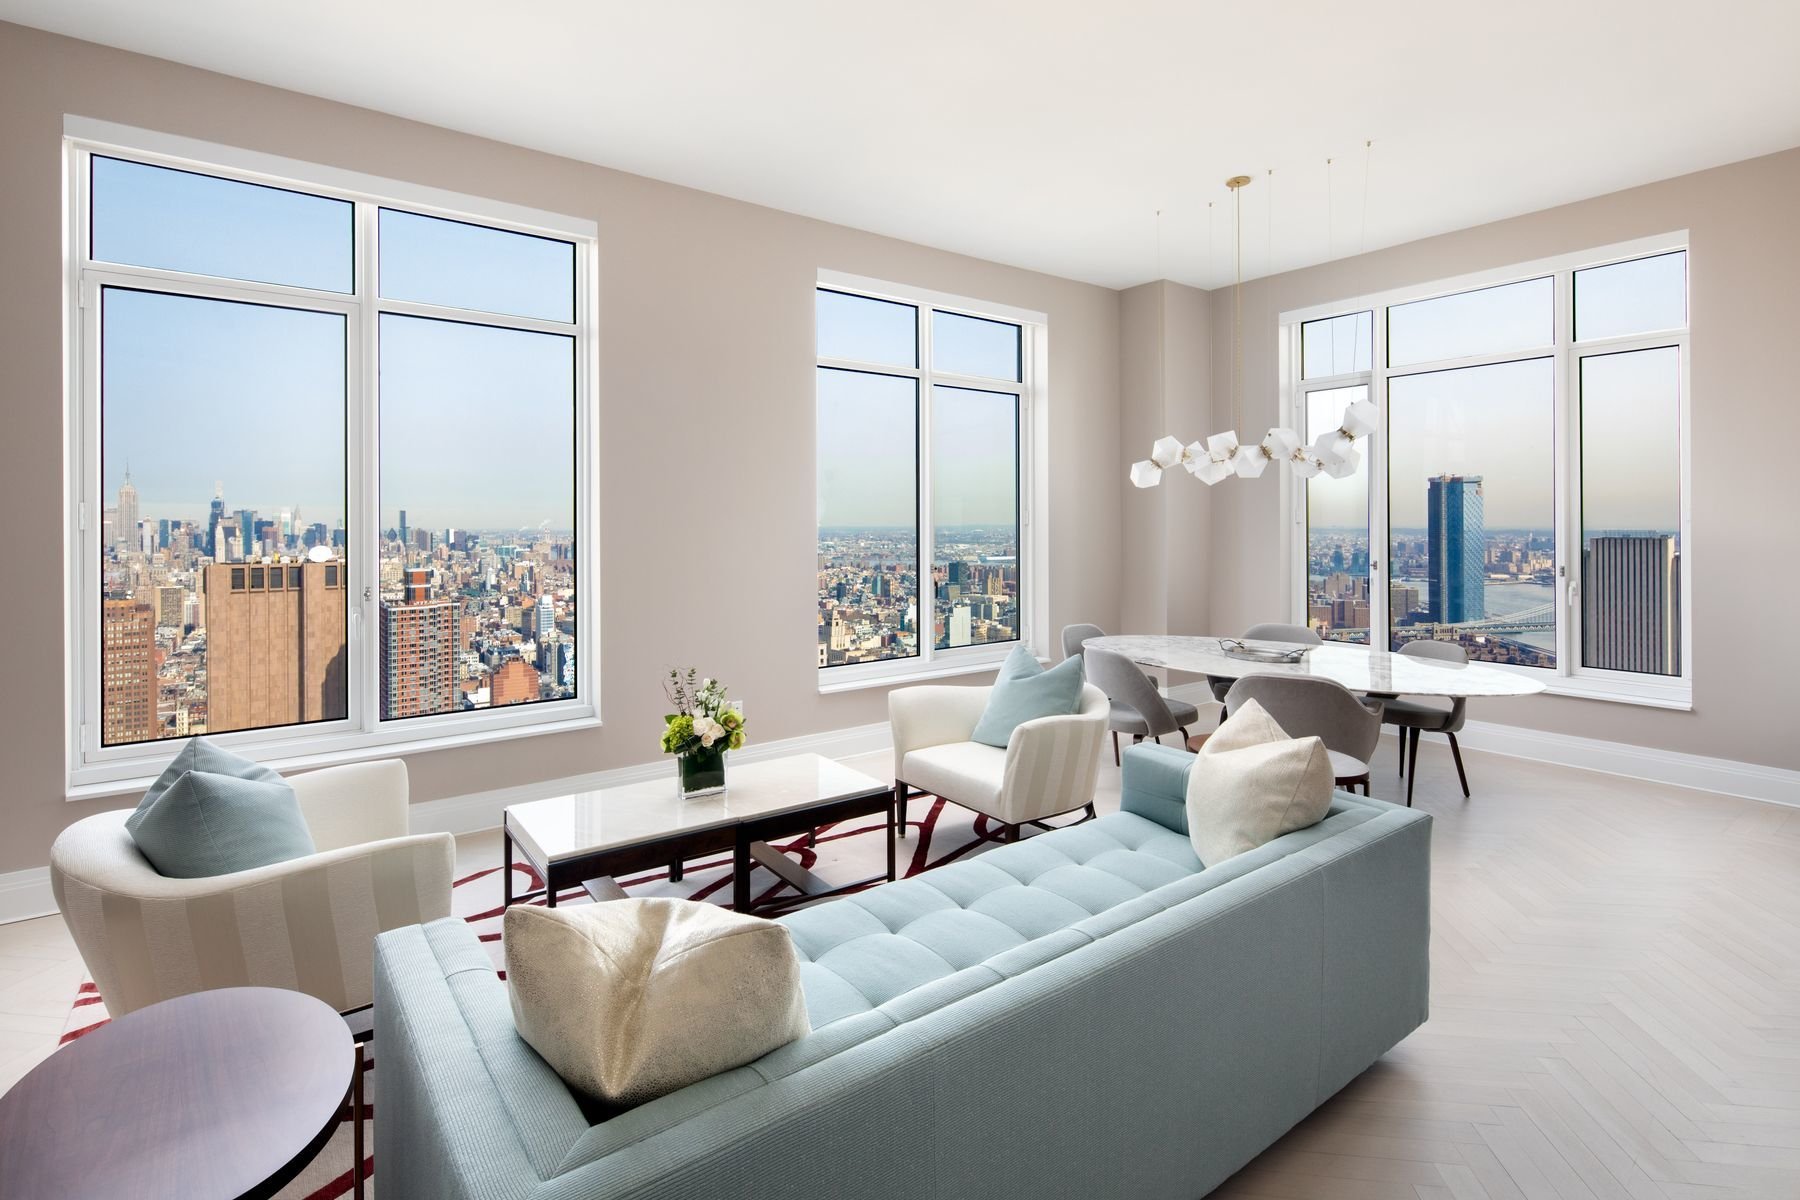 Five star living at the Four Seasons Private Residences New York, Downtown. Positioned on the 62nd floor with outstanding views of the Midtown skyline, Hudson River and East River, this Northeast corner, spacious 3 bedroom, 3.5 bath residence features an oversized corner Living /Dining Room, windowed Eat-in Kitchen with a breakfast area, Master Bedroom Suite complete with a walk-in closet, luxurious en-suite marble bathroom with a deep-soaking tub, separate shower stall, heated flooring and Robert A.M. Stern custom-designed vanities, and two additional Bedrooms with en-suite Bathrooms. Interior finishes include solid oak wood flooring with herringbone pattern in the formal rooms. The Kitchen is outfitted with Bilotta rift-cut oak kitchen cabinetry, top of the line Gaggenau appliances, wine cooler and ample pantry space. Both the stove and the dryer vent to the outside. The newly constructed, Four Seasons Private Residences, masterfully designed by Robert A.M. Stern, is a full service white glove condominium serviced by legendary Four Seasons Hotels and Resorts. Residents may enjoy access to Four Seasons Hotel amenities including a spa and salon facilities, 75' swimming pool, restaurant, bar and lounge, ballroom facilities, and meeting rooms as well as a comprehensive suite of a la cart services. With residences beginning on the 39th floor, the sweeping views are unparalleled. The 38th floor is devoted to private residential amenities including  a fitness center and yoga studio, private dining room, conservatory and lounges with access to loggias, screening room and Roto-designed kids playroom. Pets welcome.Co-exclusivehttps://my.matterport.com/show/?m=hEeGS2NAqQ3